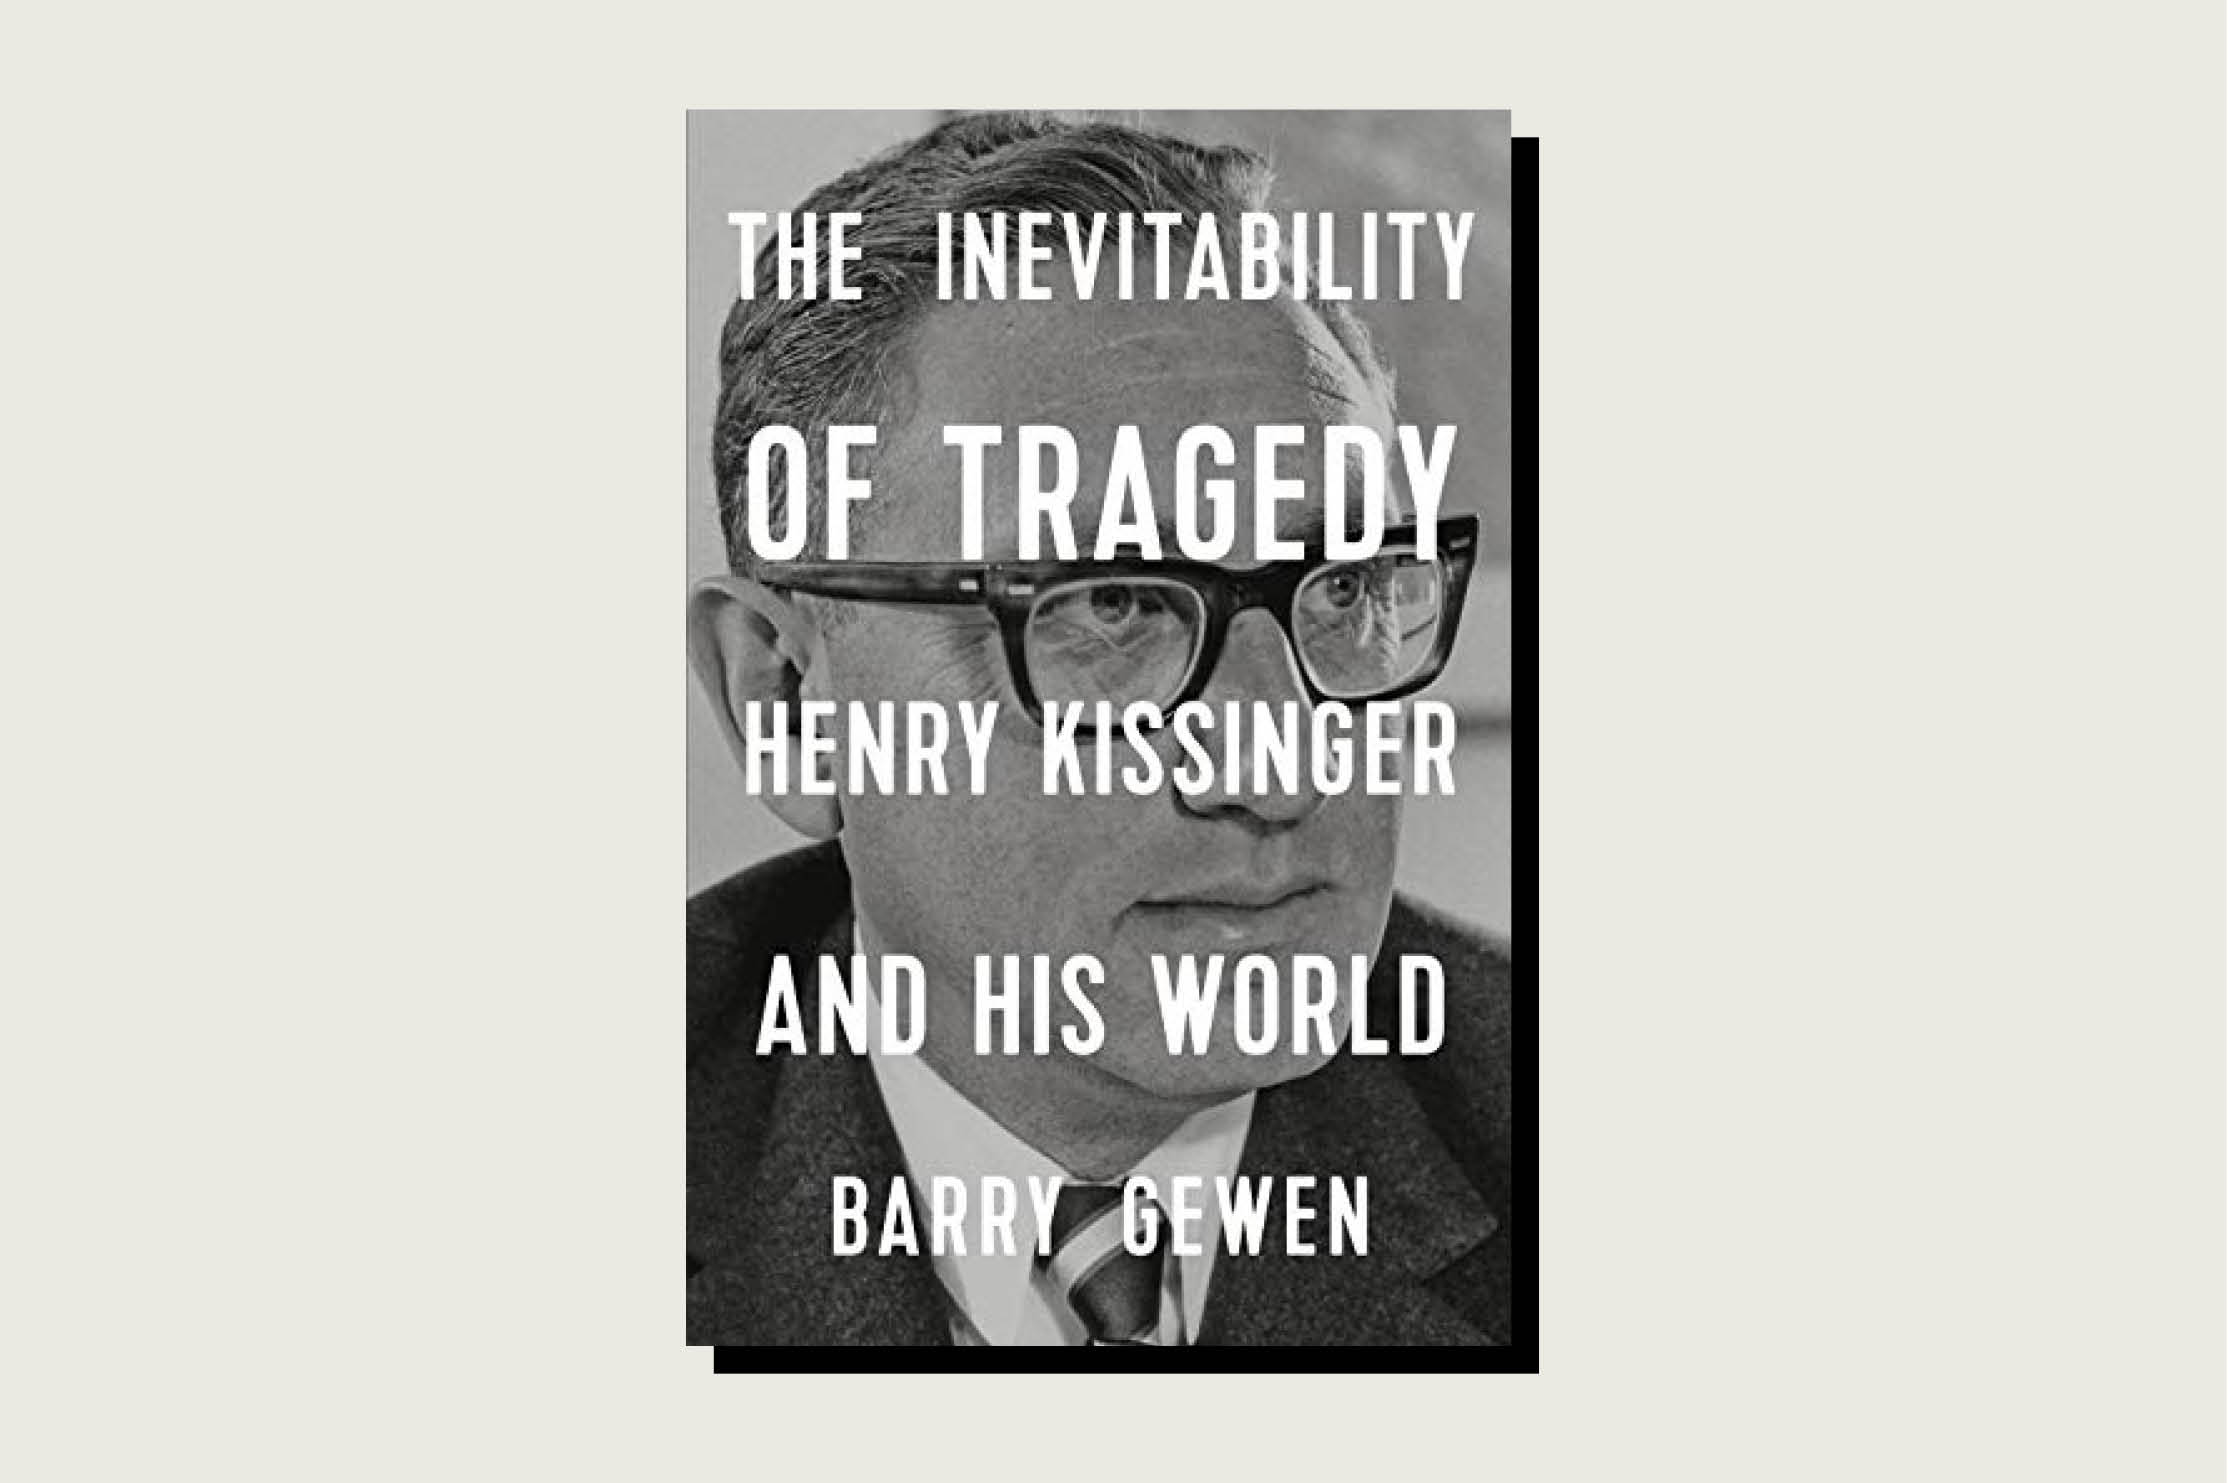 The Inevitability of Tragedy: Henry Kissinger and His World, Barry Gewen, W.W. Norton, 452 pp., , April 2020